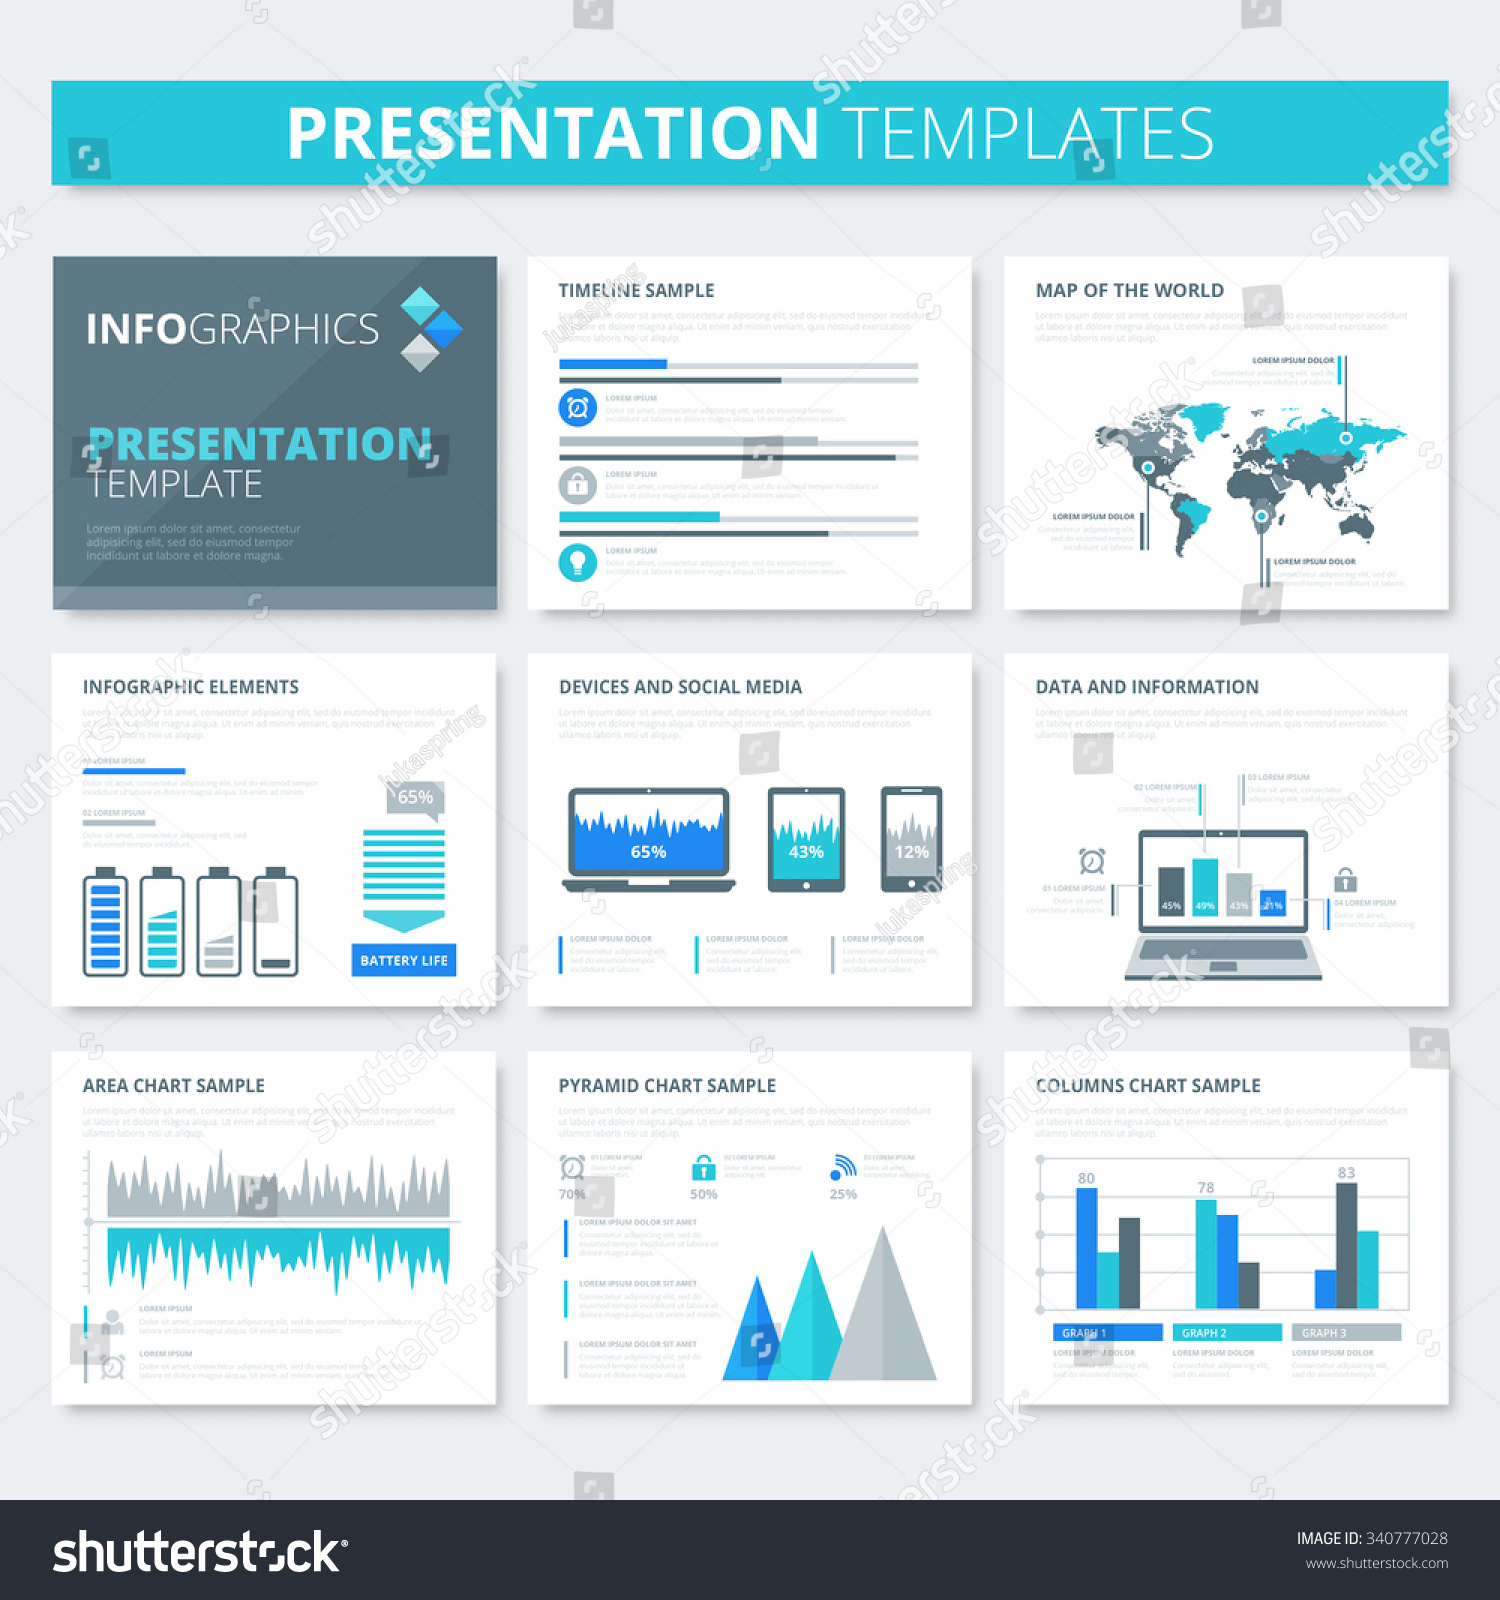 Presentation Template Infographic Elements Business Flyer Stock ...